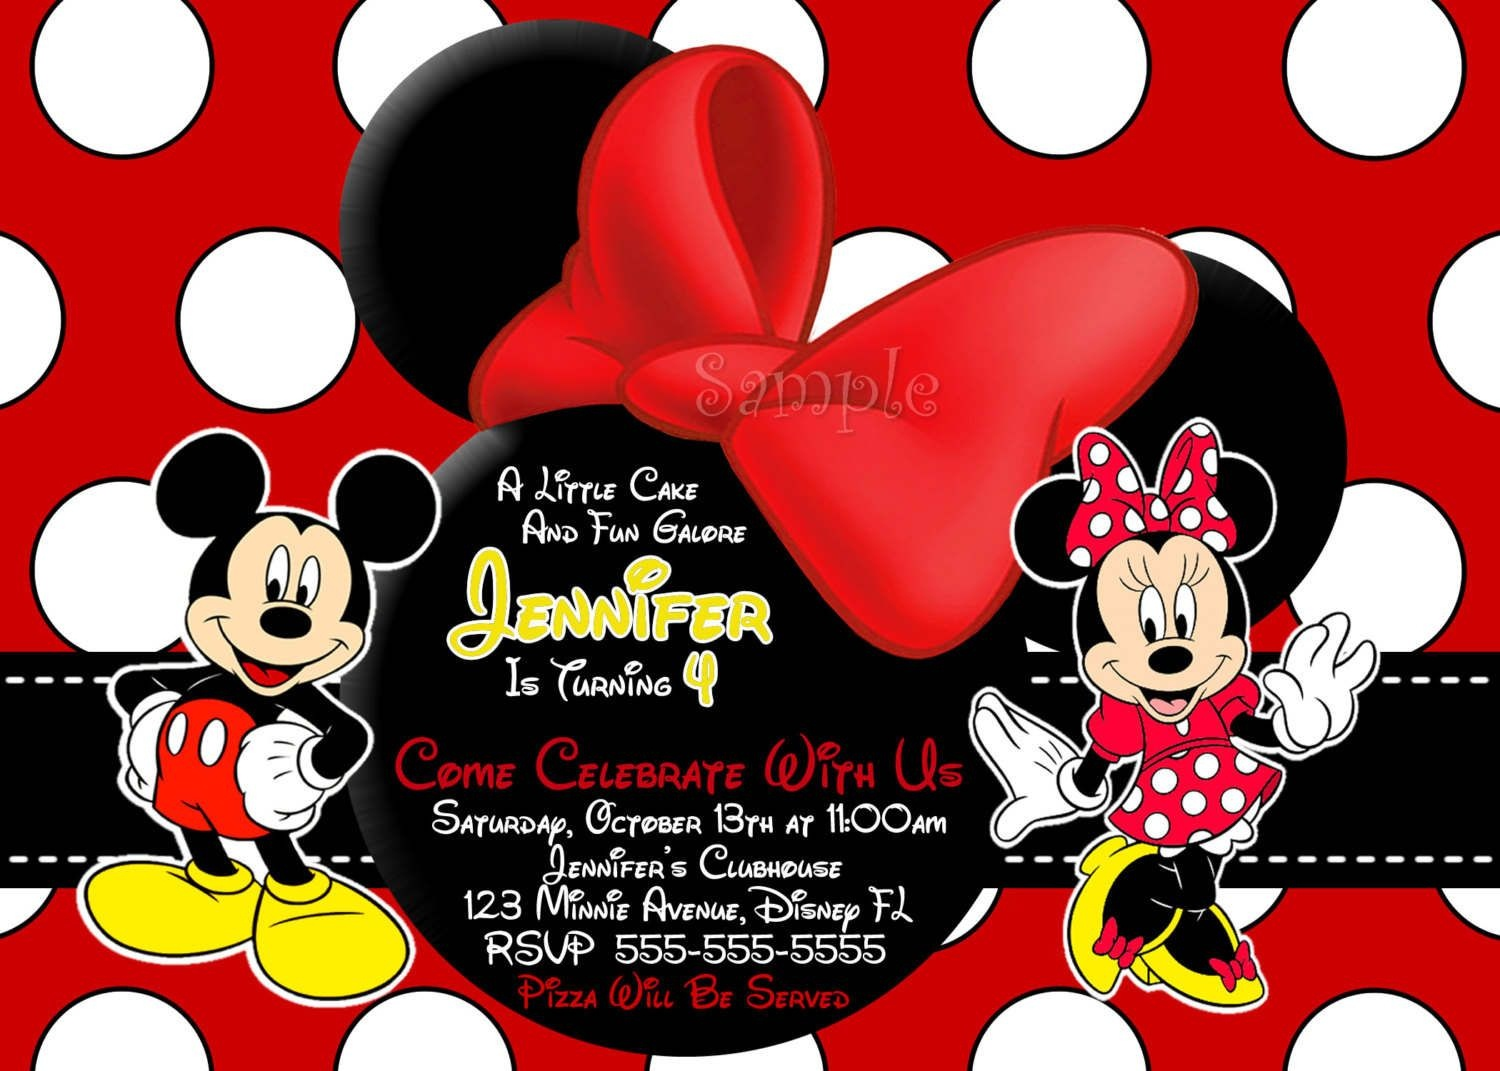 Free Mickey And Minnie Mouse Printable Invitations | Mickey E Minie - Free Printable Mickey And Minnie Mouse Invitations